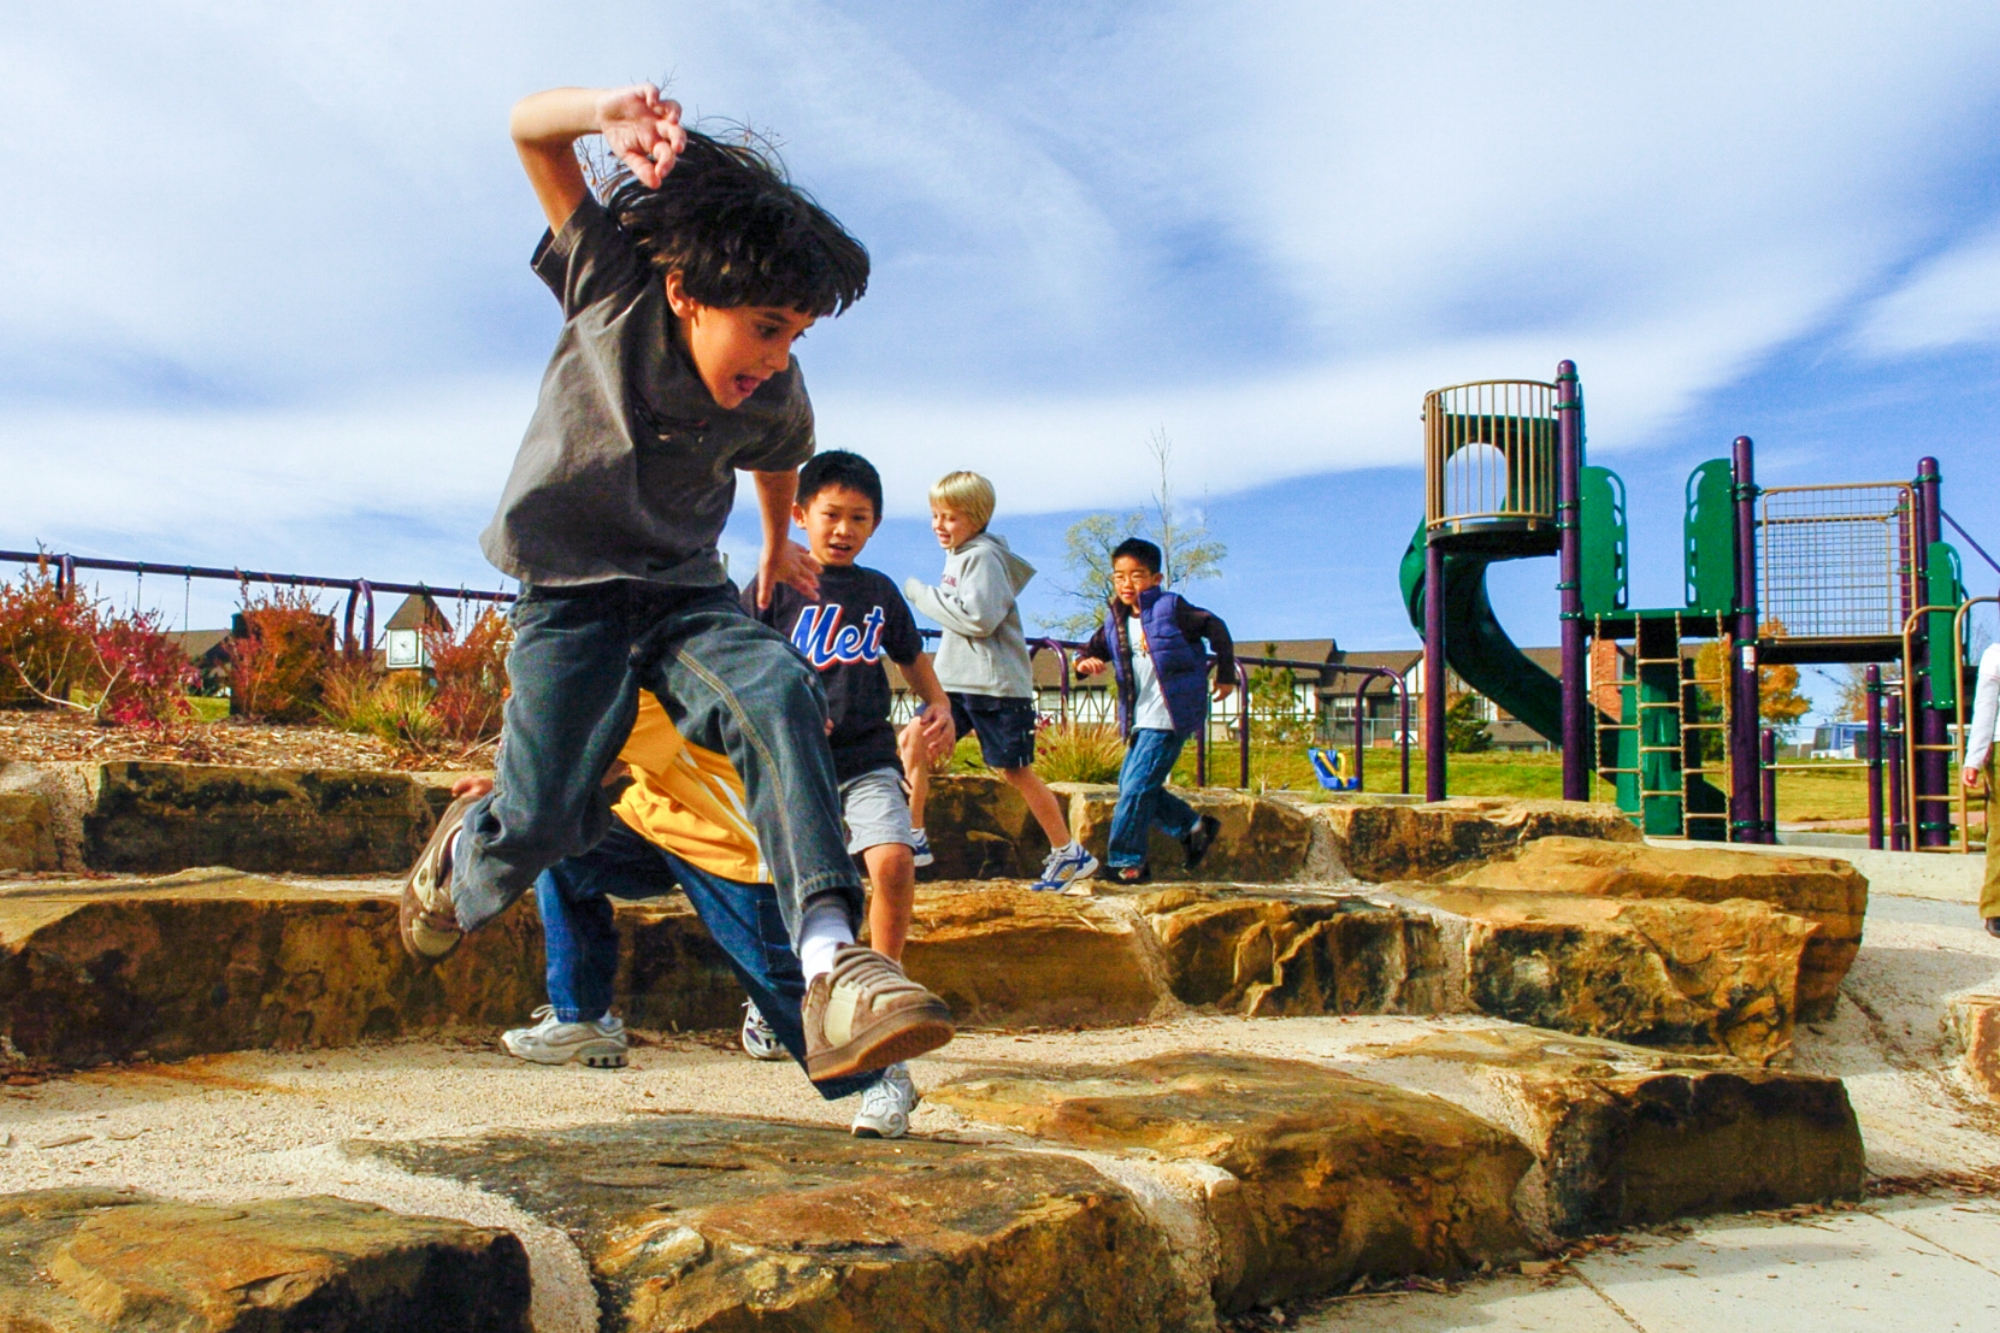 Denver Public Schools Learning Landscapes at Southmoor Elementary kid playing on boulder rock outdoor classroom amphitheater at playground